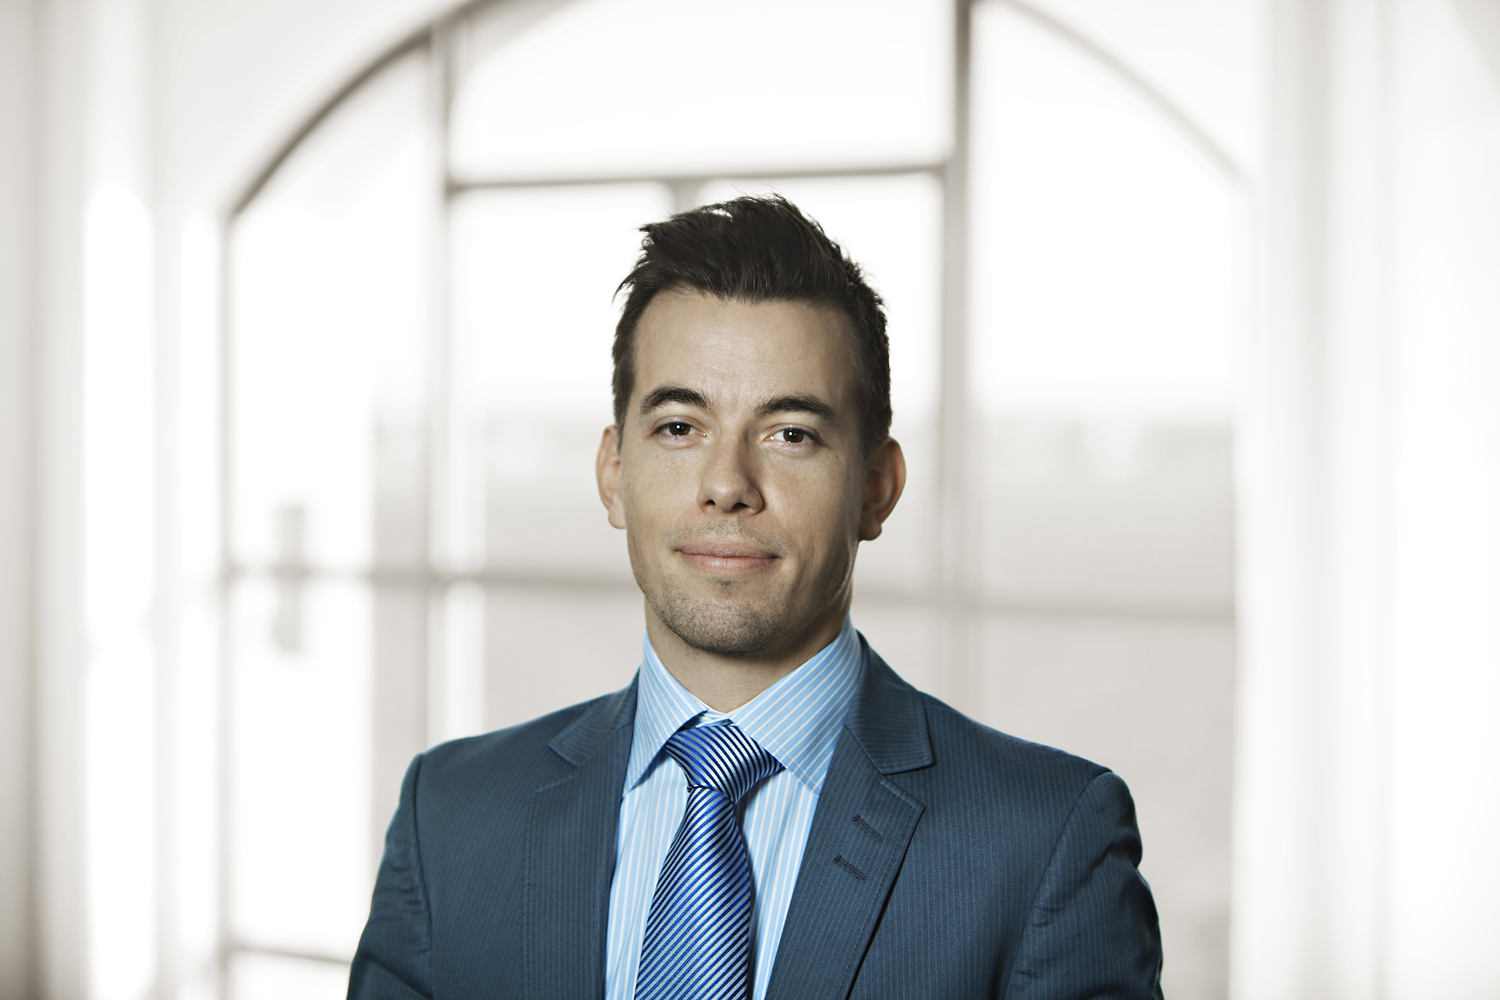 Chief Underwriter Anders Vium Gjelfort